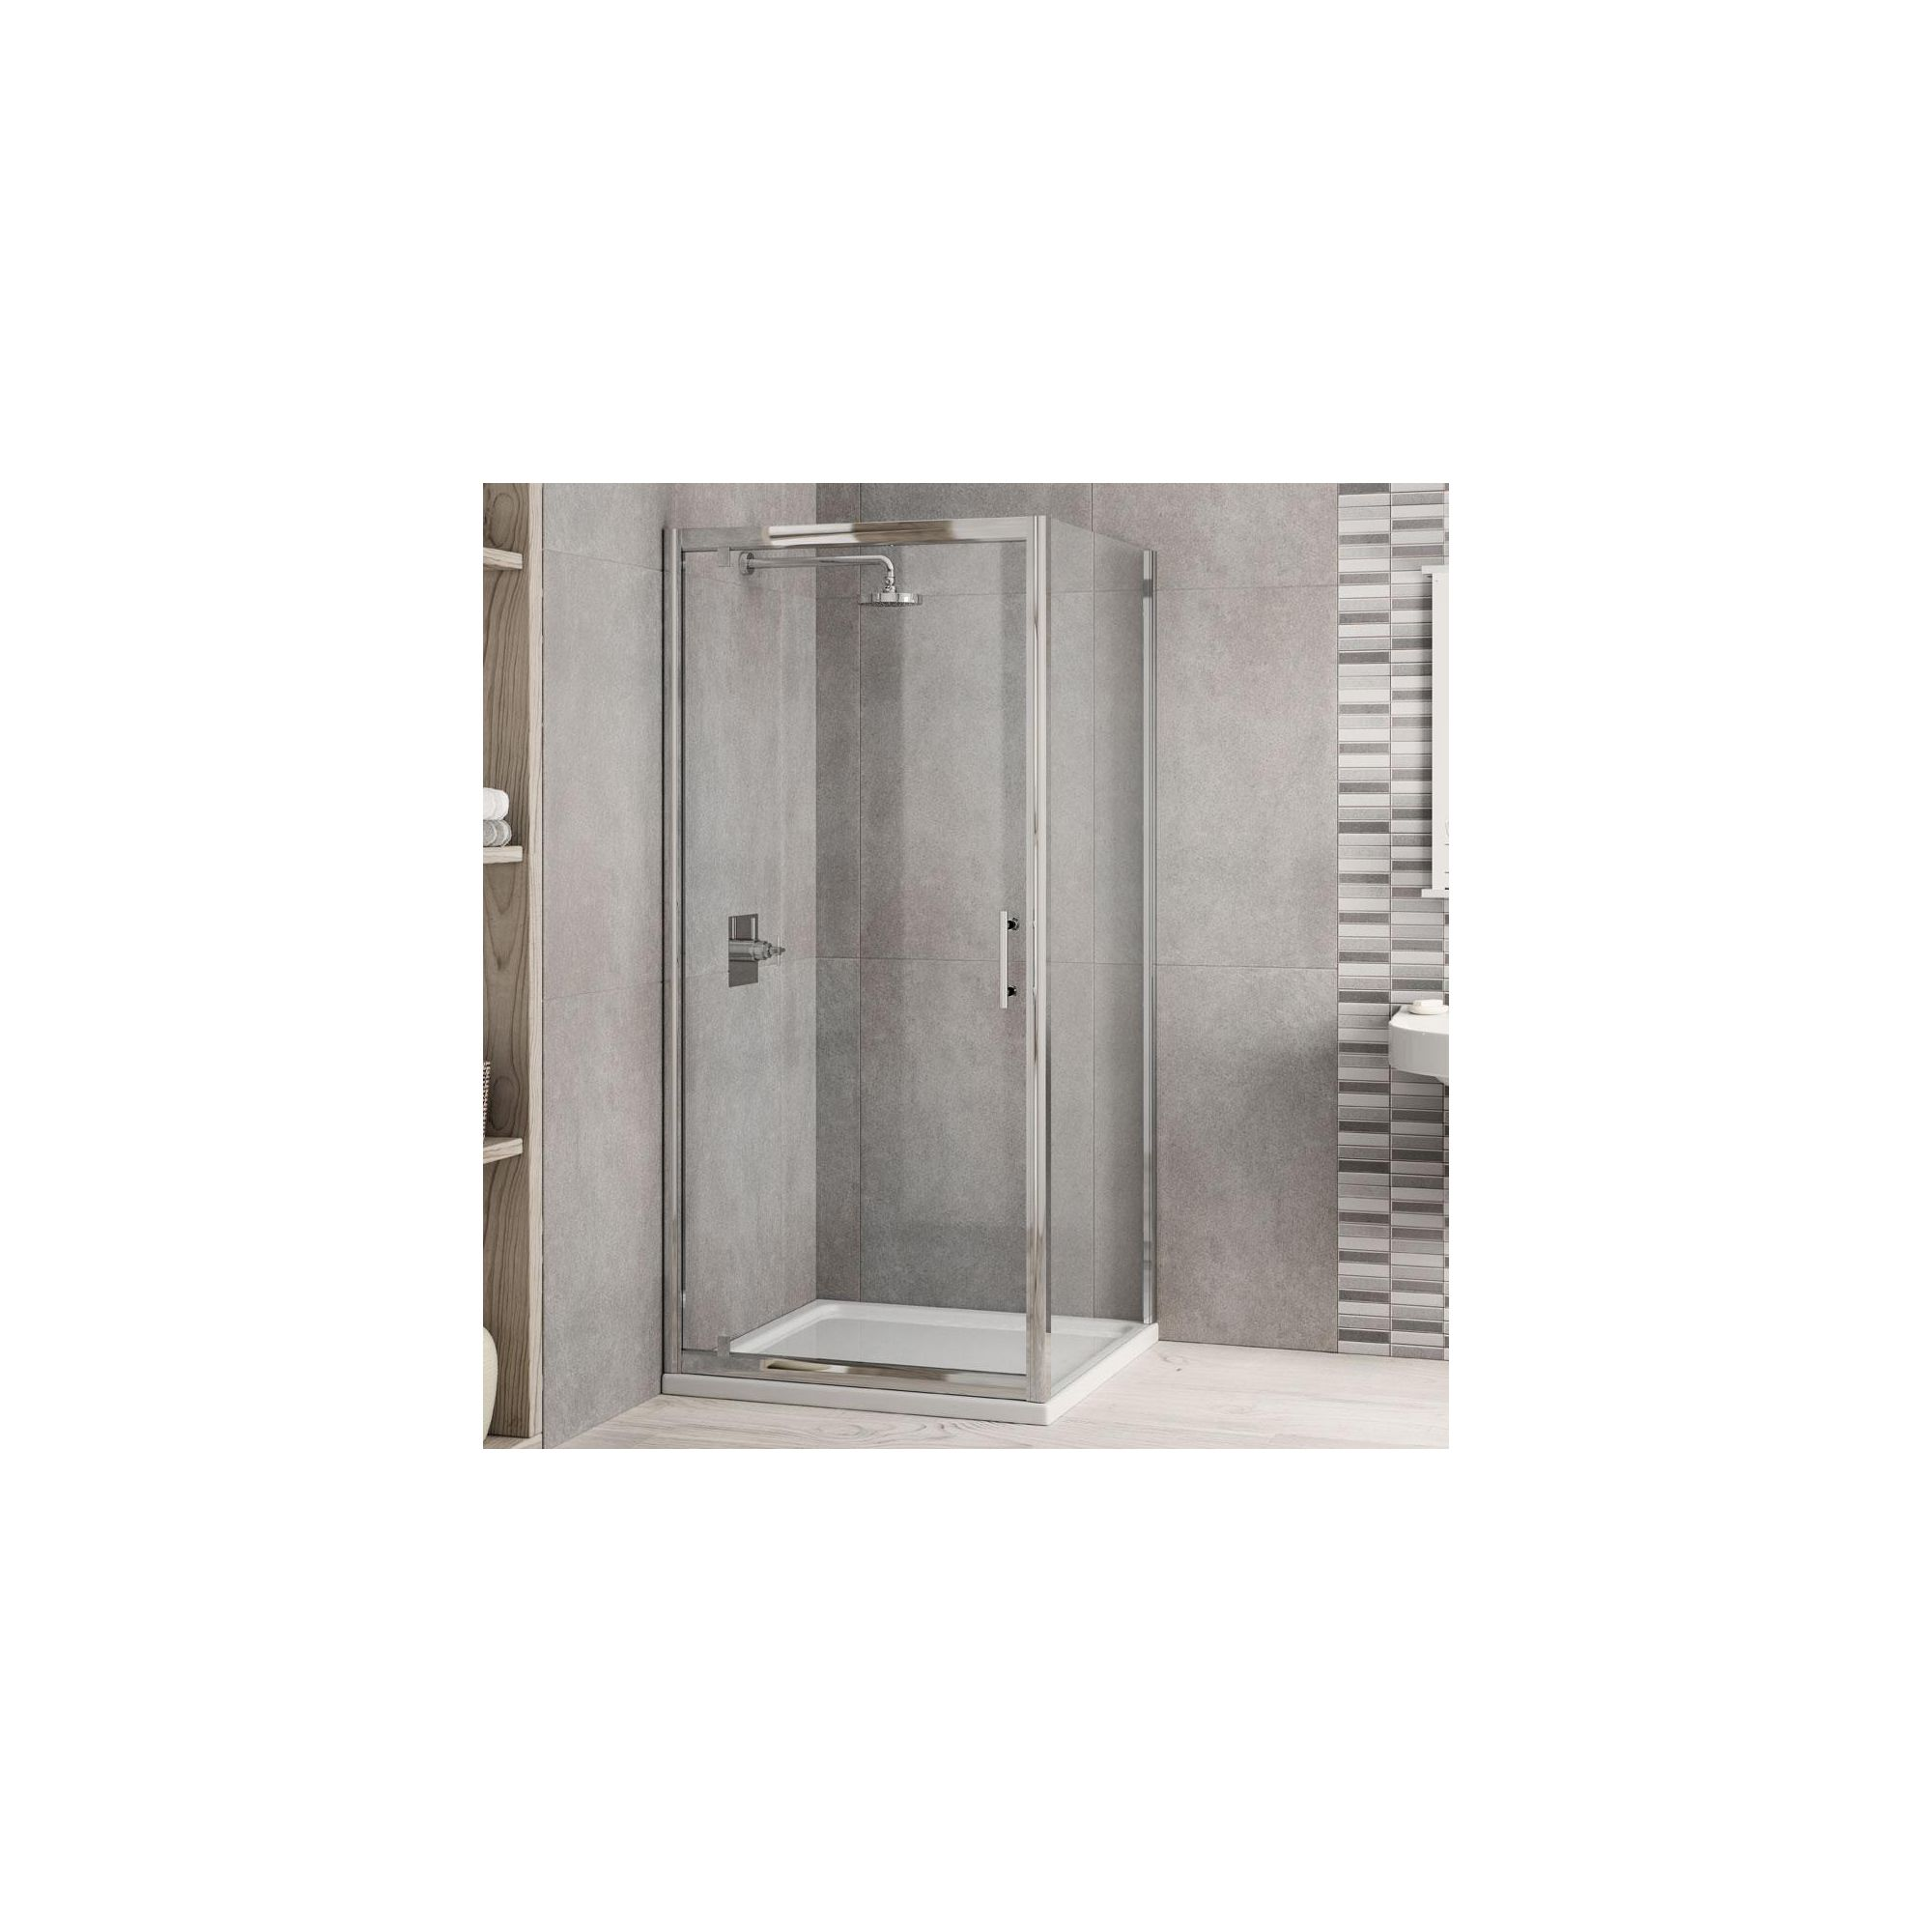 Elemis Inspire Pivot Door Shower Enclosure, 900mm x 900mm, 6mm Glass, Low Profile Tray at Tesco Direct